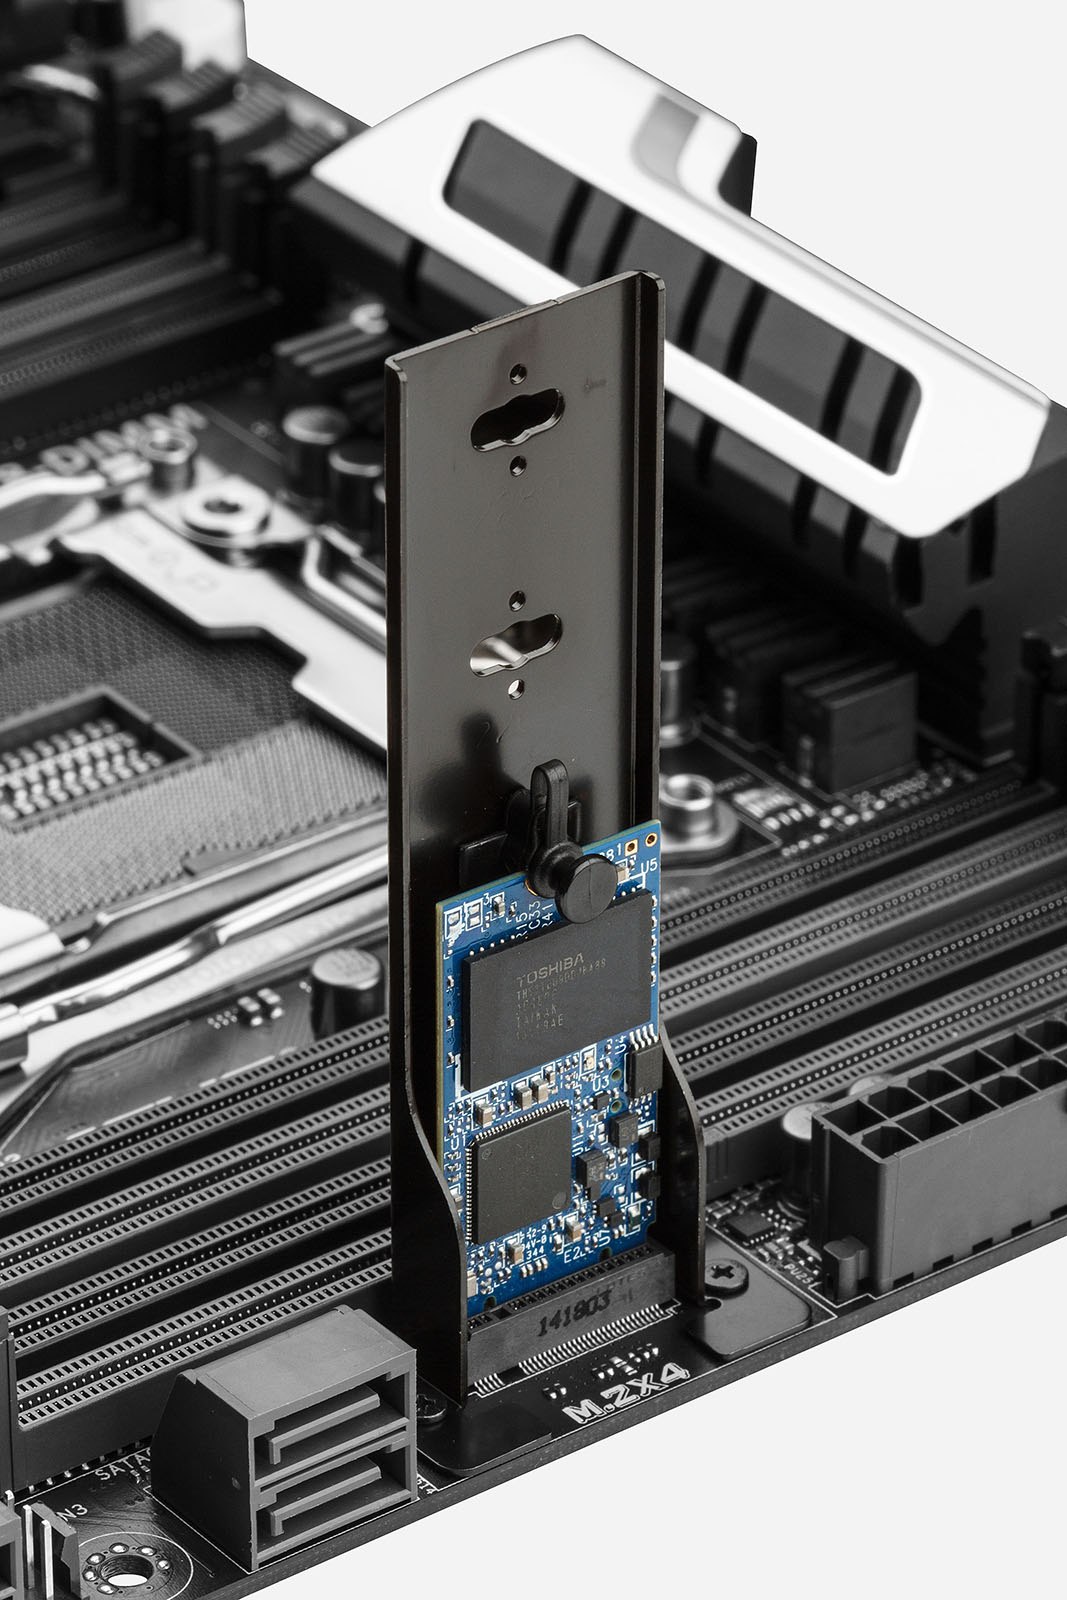 Asus X99 Deluxe Motherboard Review Techgage